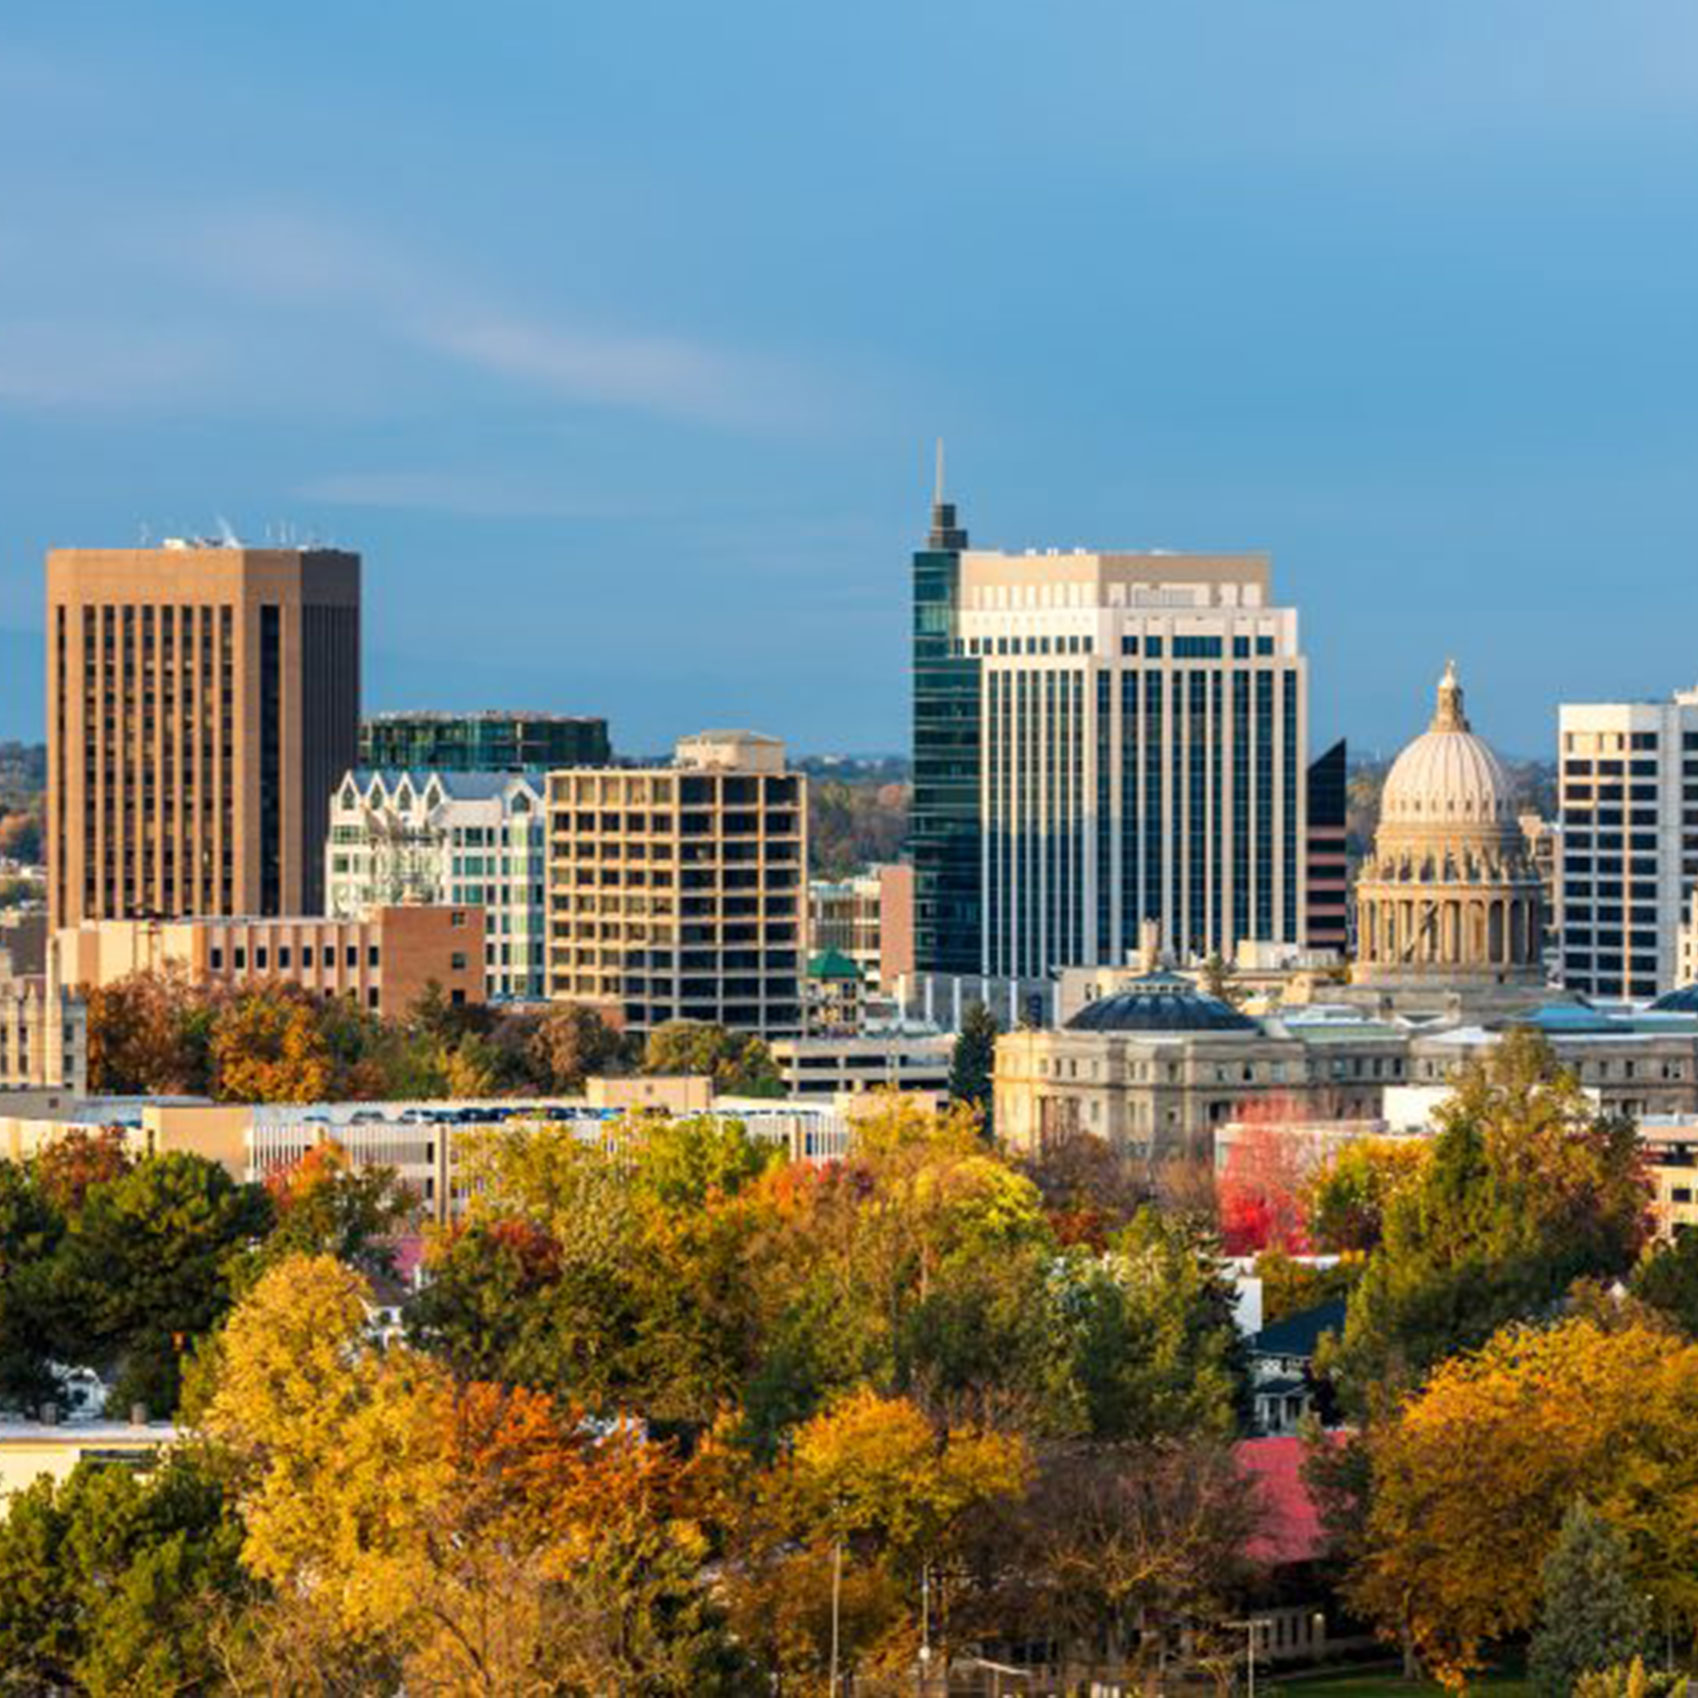 autumn test prep courses, classes, private tutoring and schedule in Boise, ID